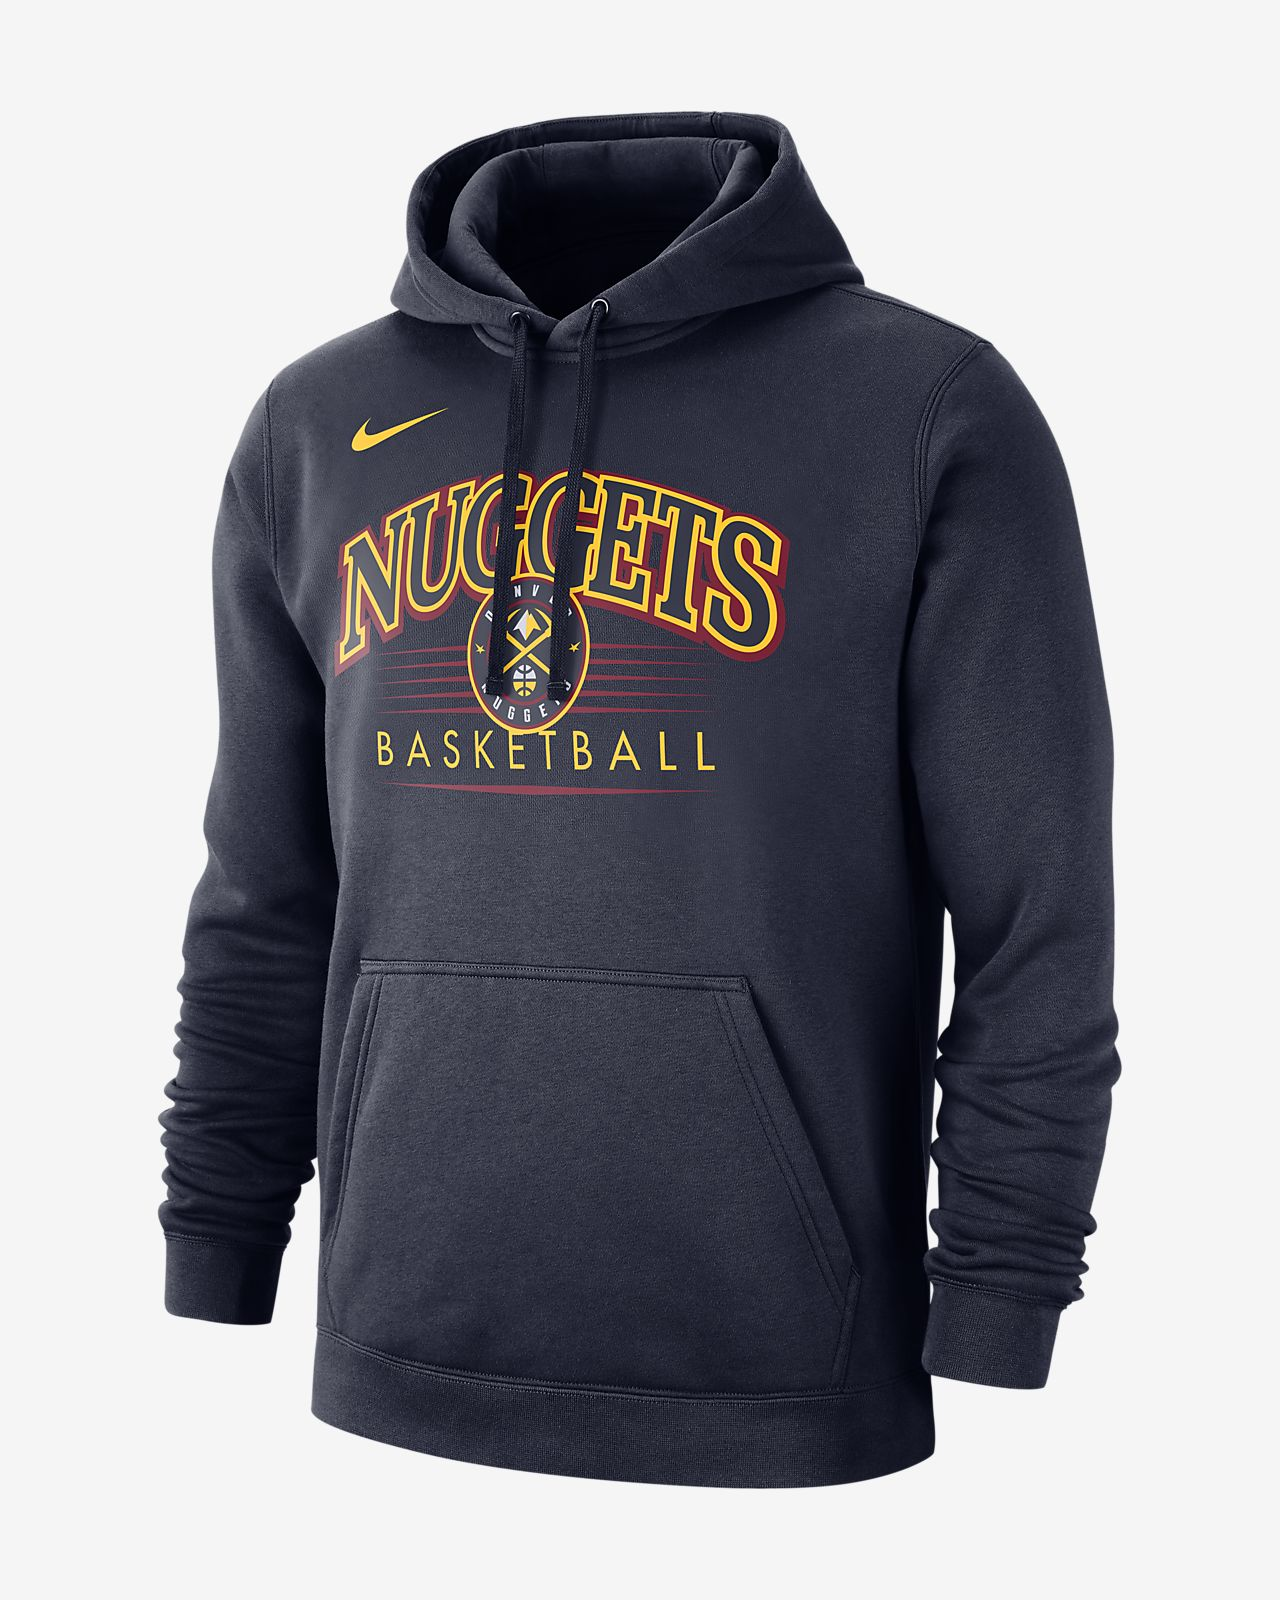 Denver Nuggets Nike Men's NBA Hoodie